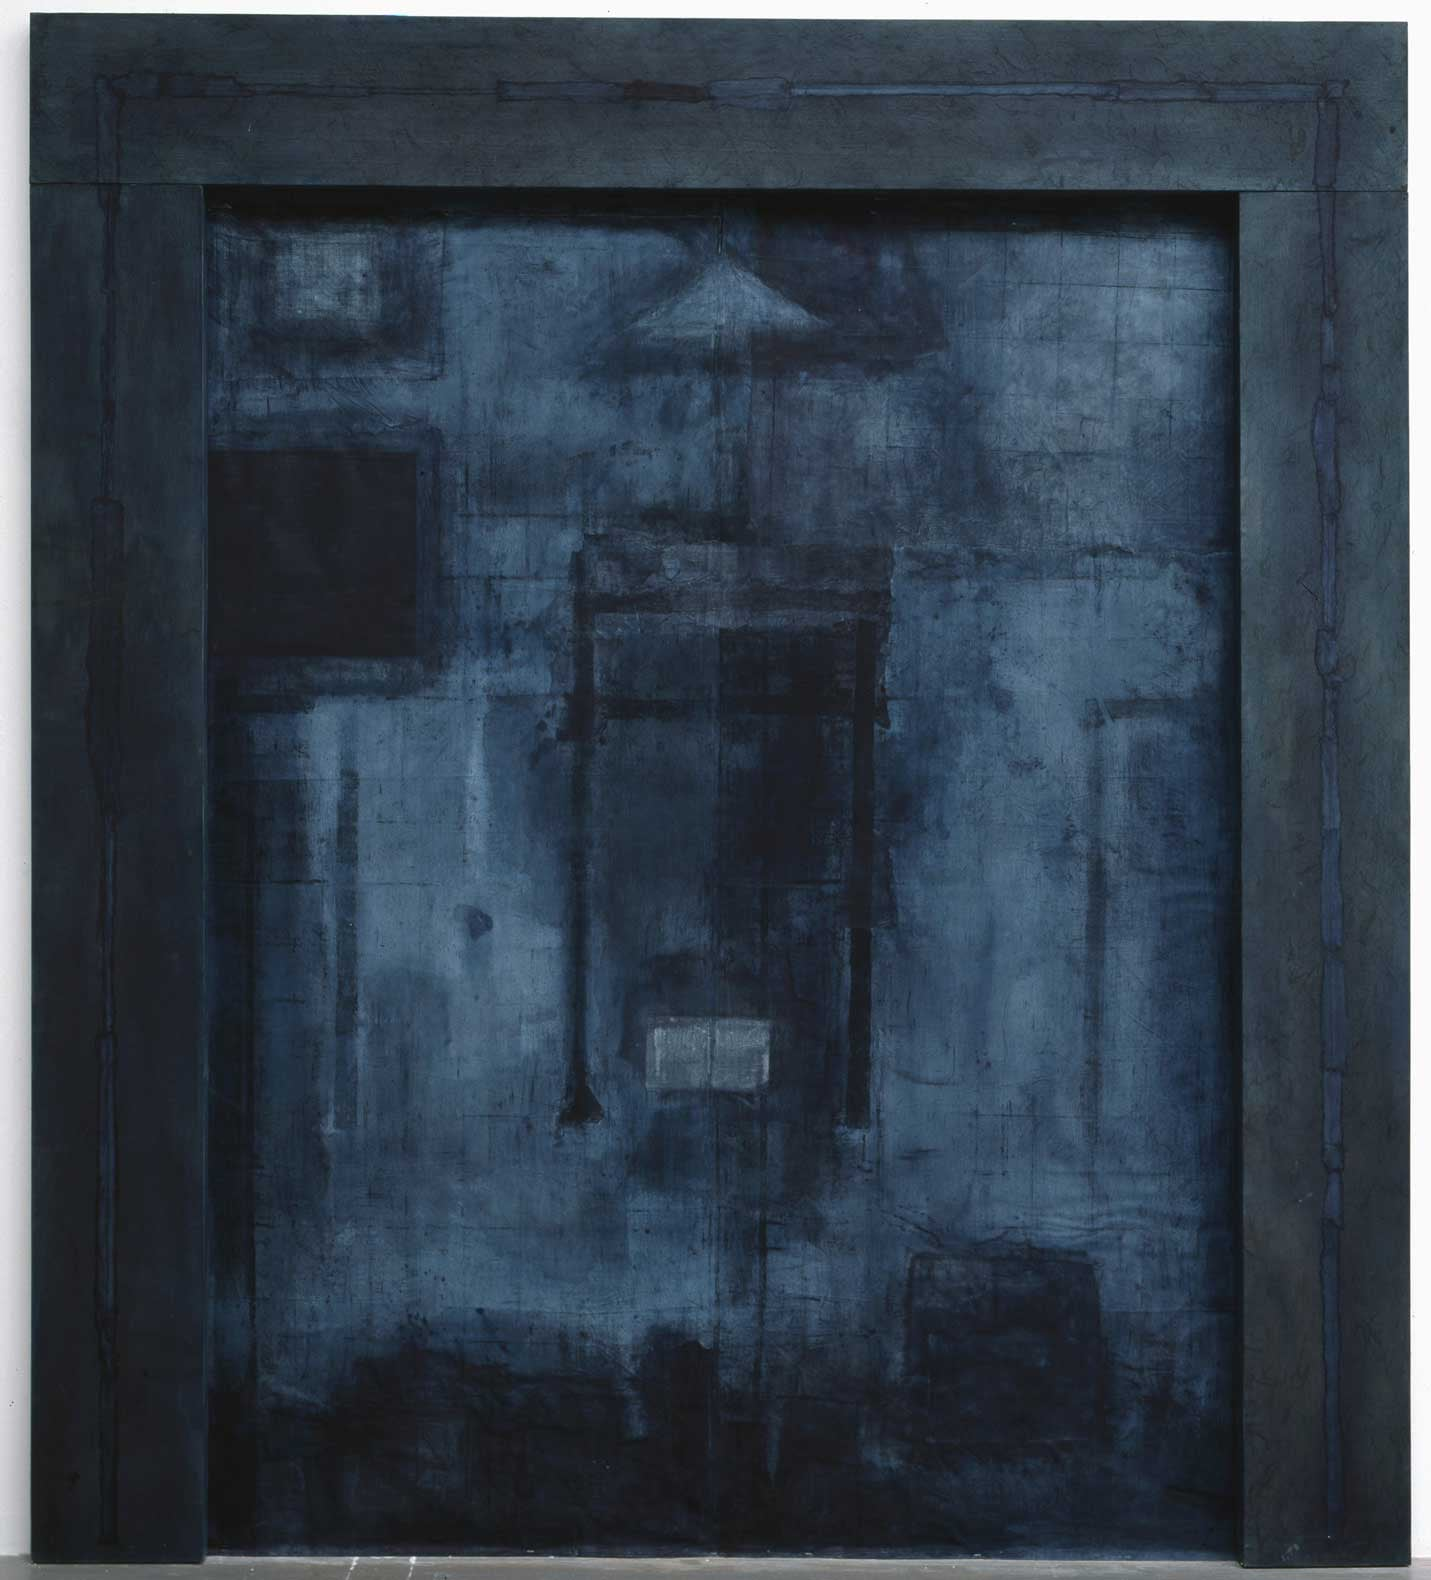 Glowing Gate     1995   Mixed media, washi on linen     106.4 x 94.6 x 2 inches   (270x240x5cm)